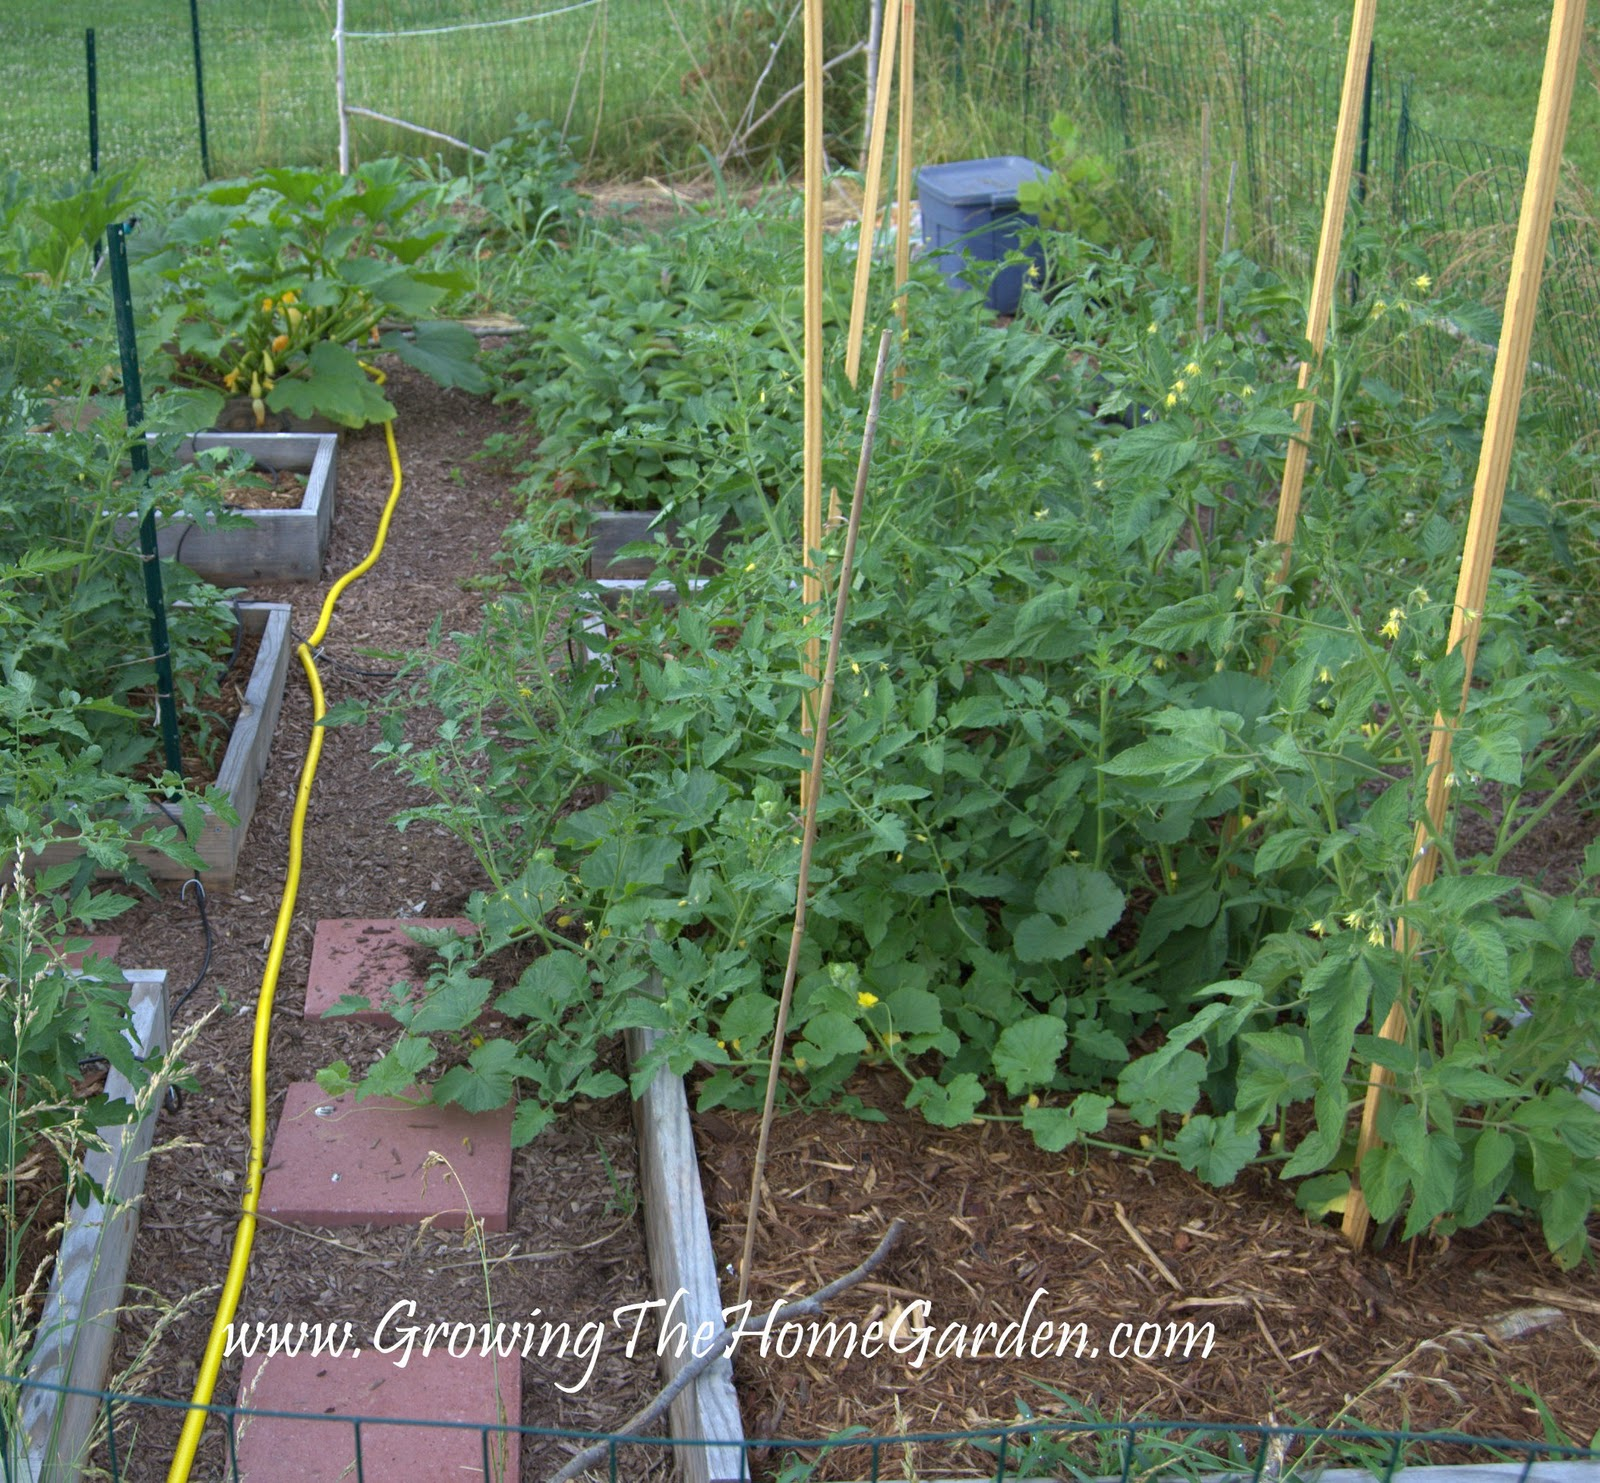 11 tips to consider when designing a raised bed vegetable garden layout